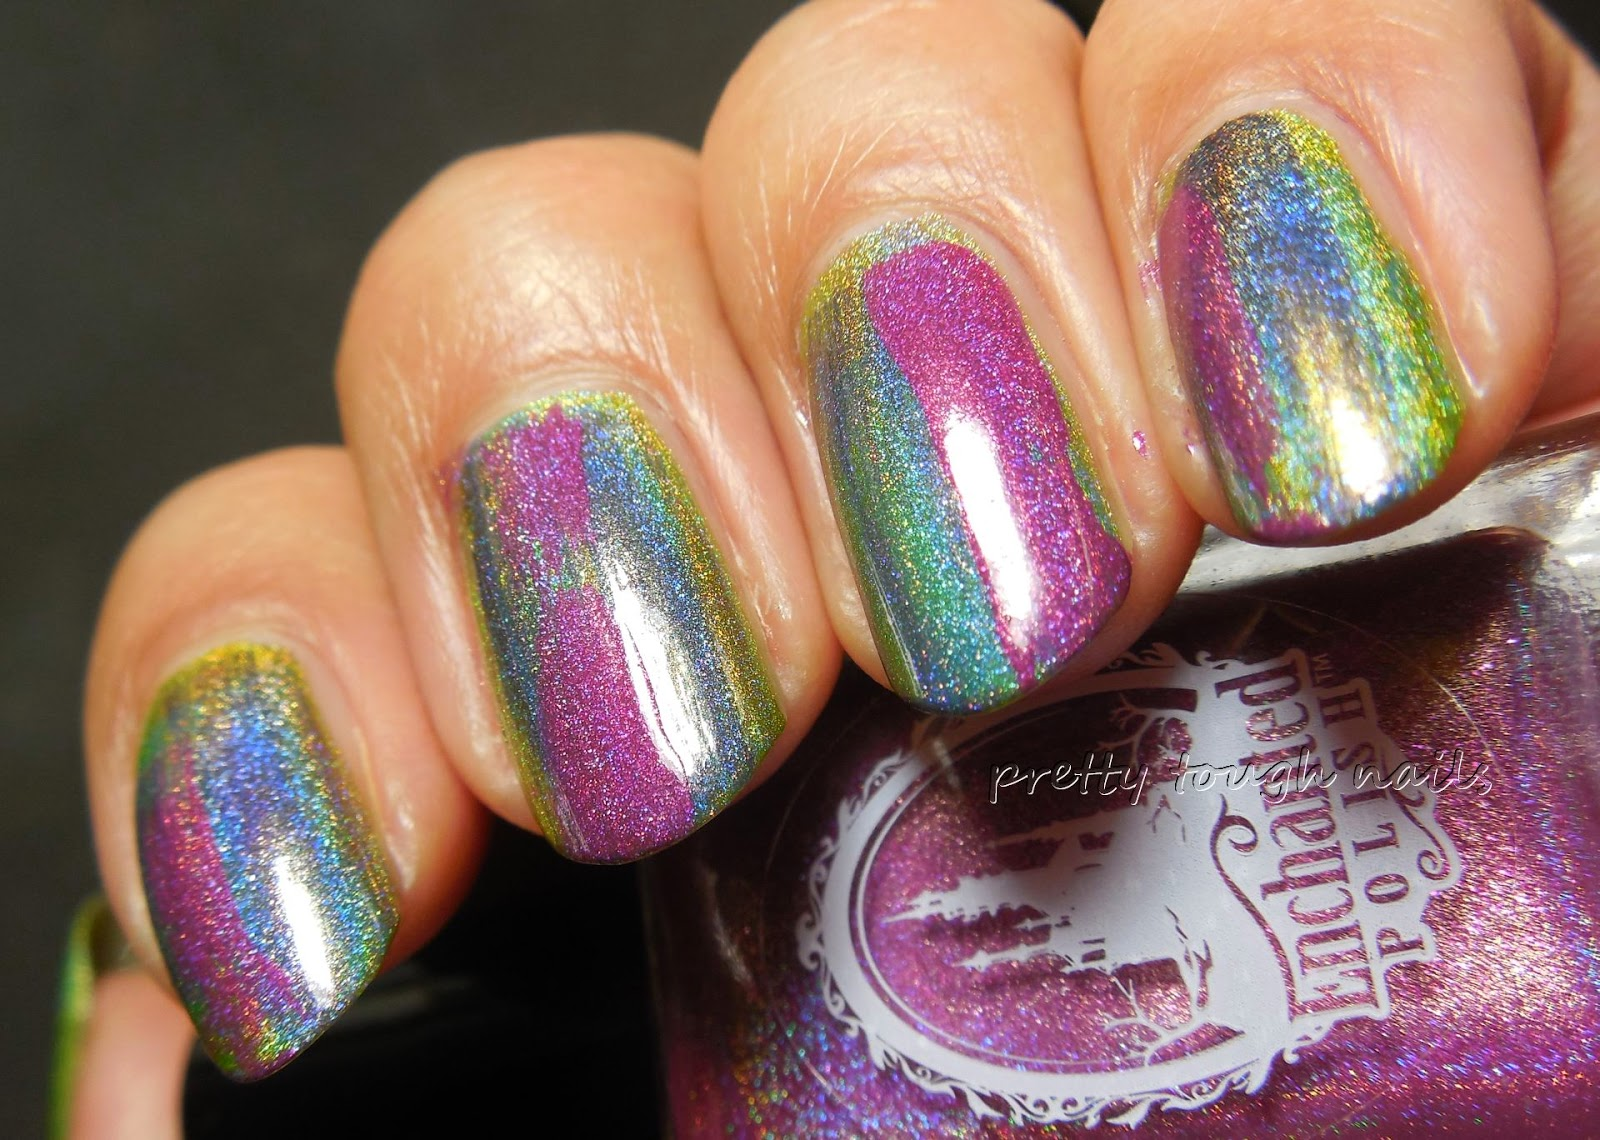 Enchanted Polish March 2014 Distressed Tie Dye